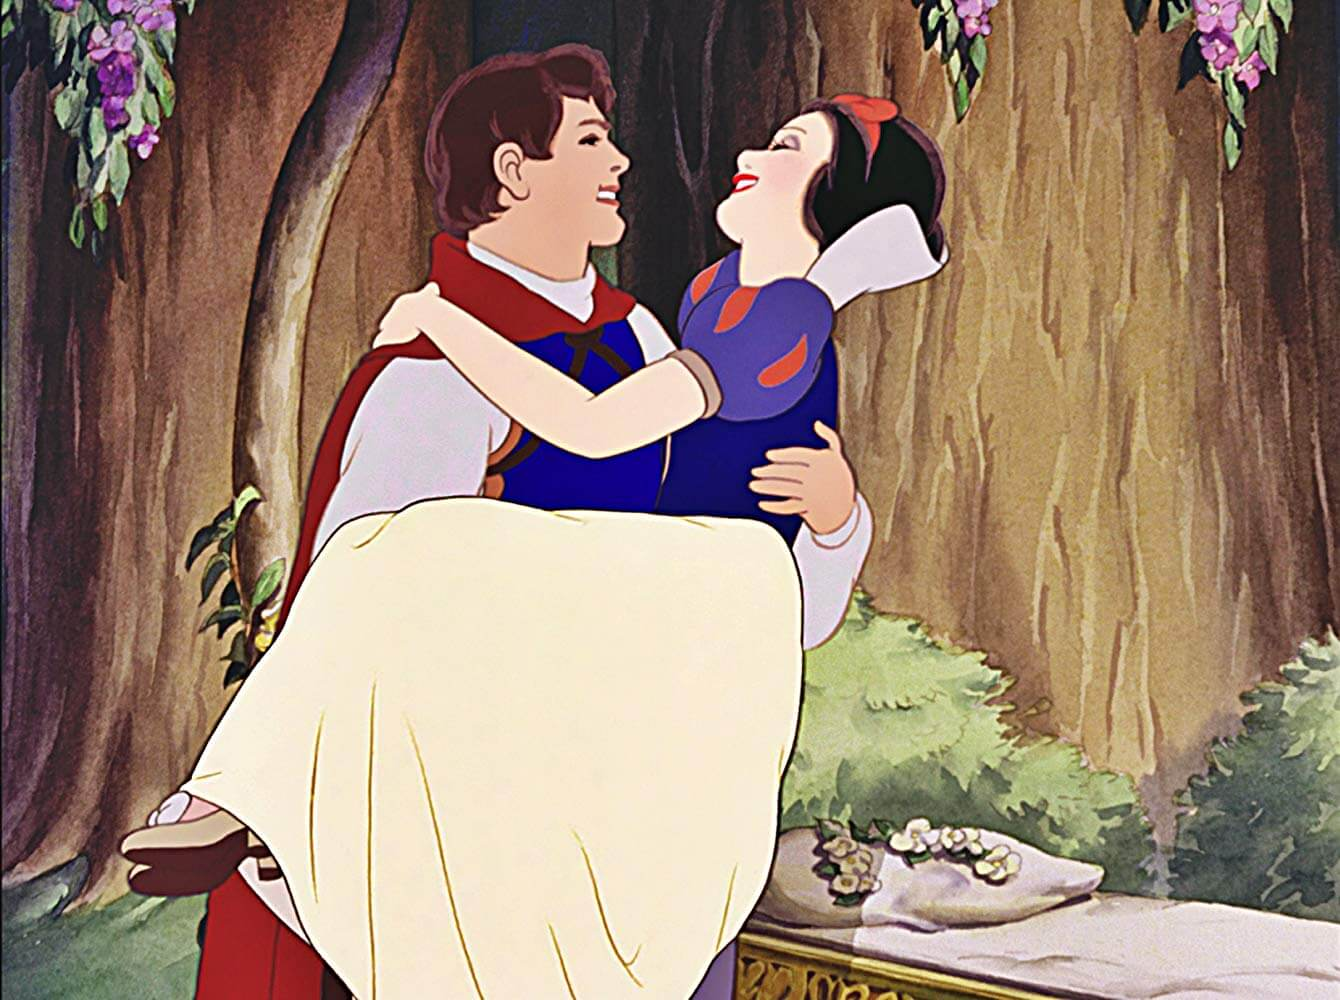 12 Best Snow White Quotes to Use as Instagram Captions